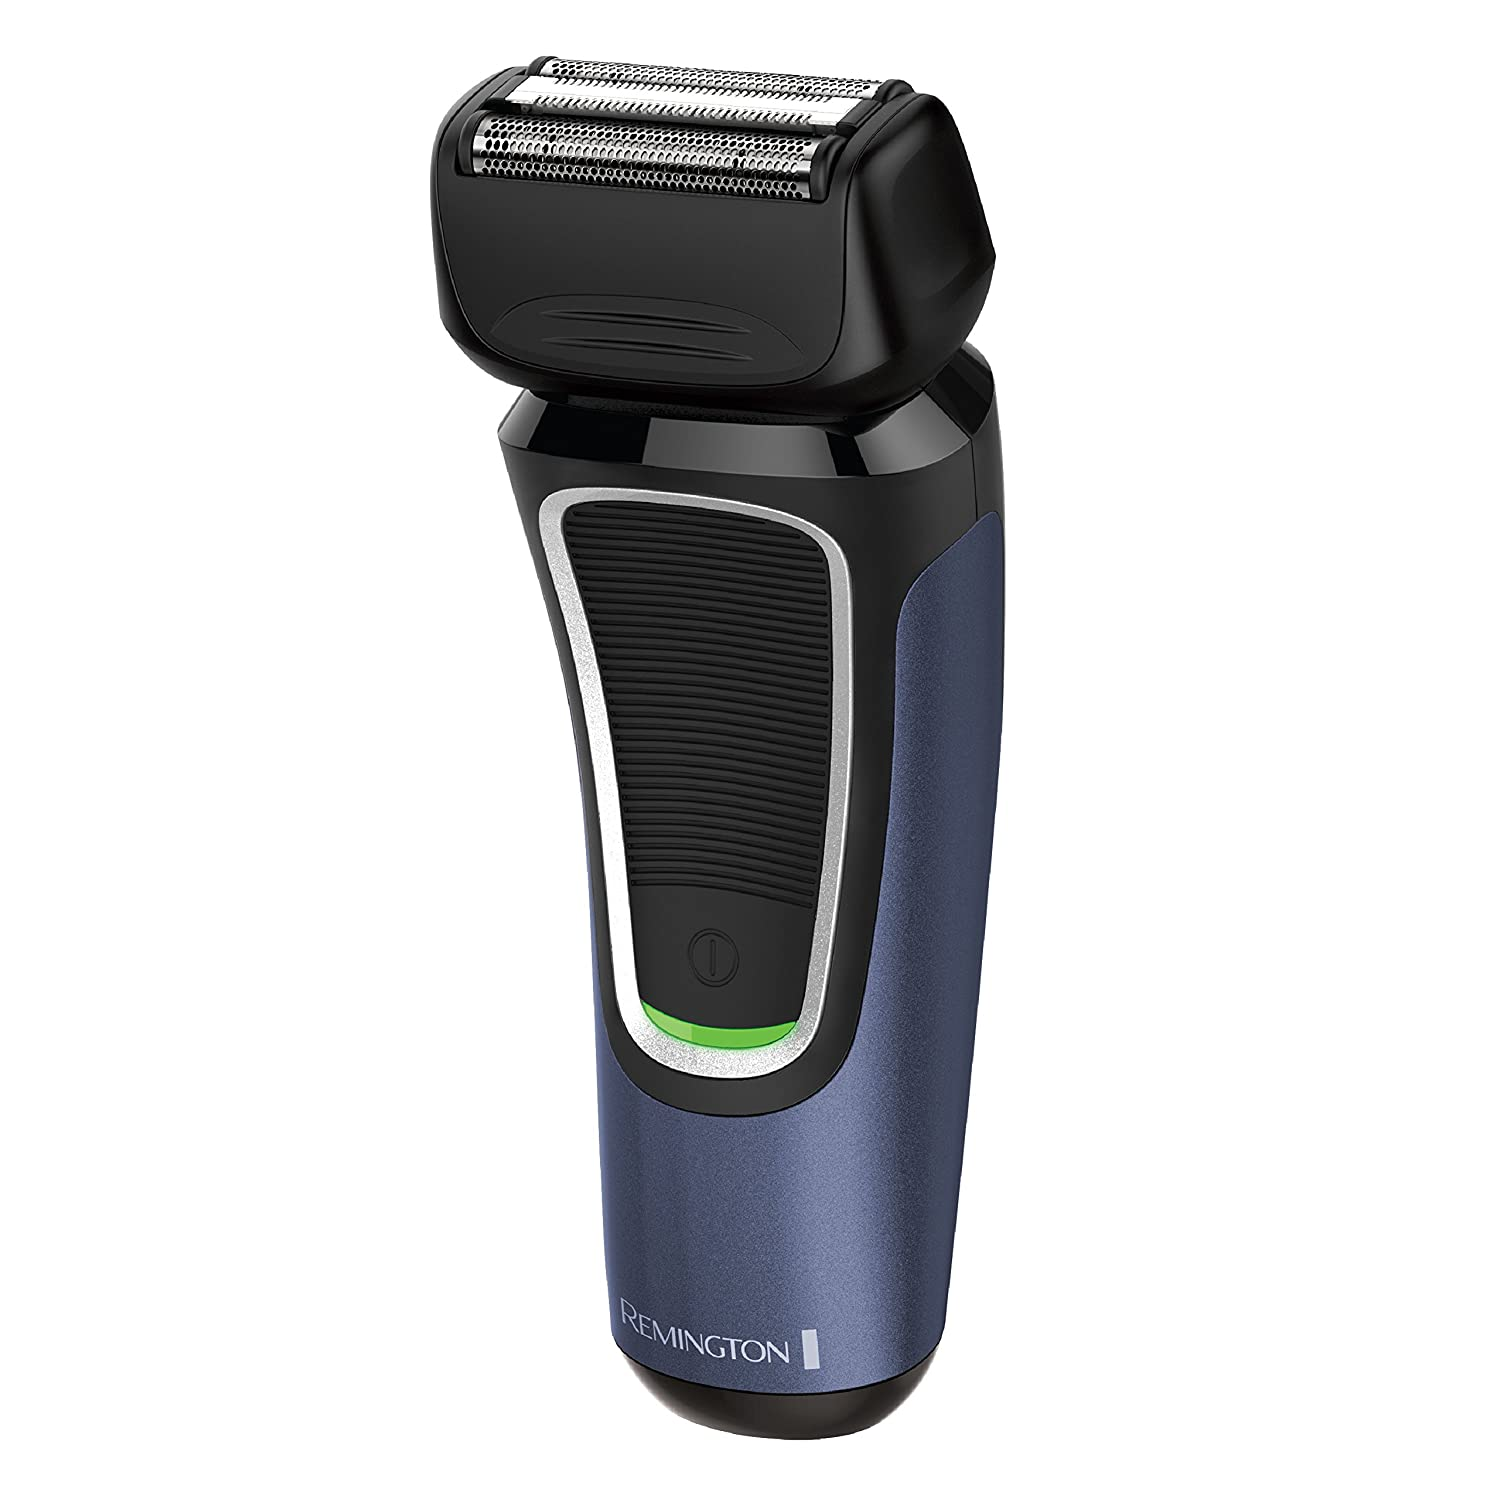 Remington PF7500 F5 Comfort Series Foil Shaver, Men's Electric Razor, Electric Shaver Men' s Electric Razor Remington Products